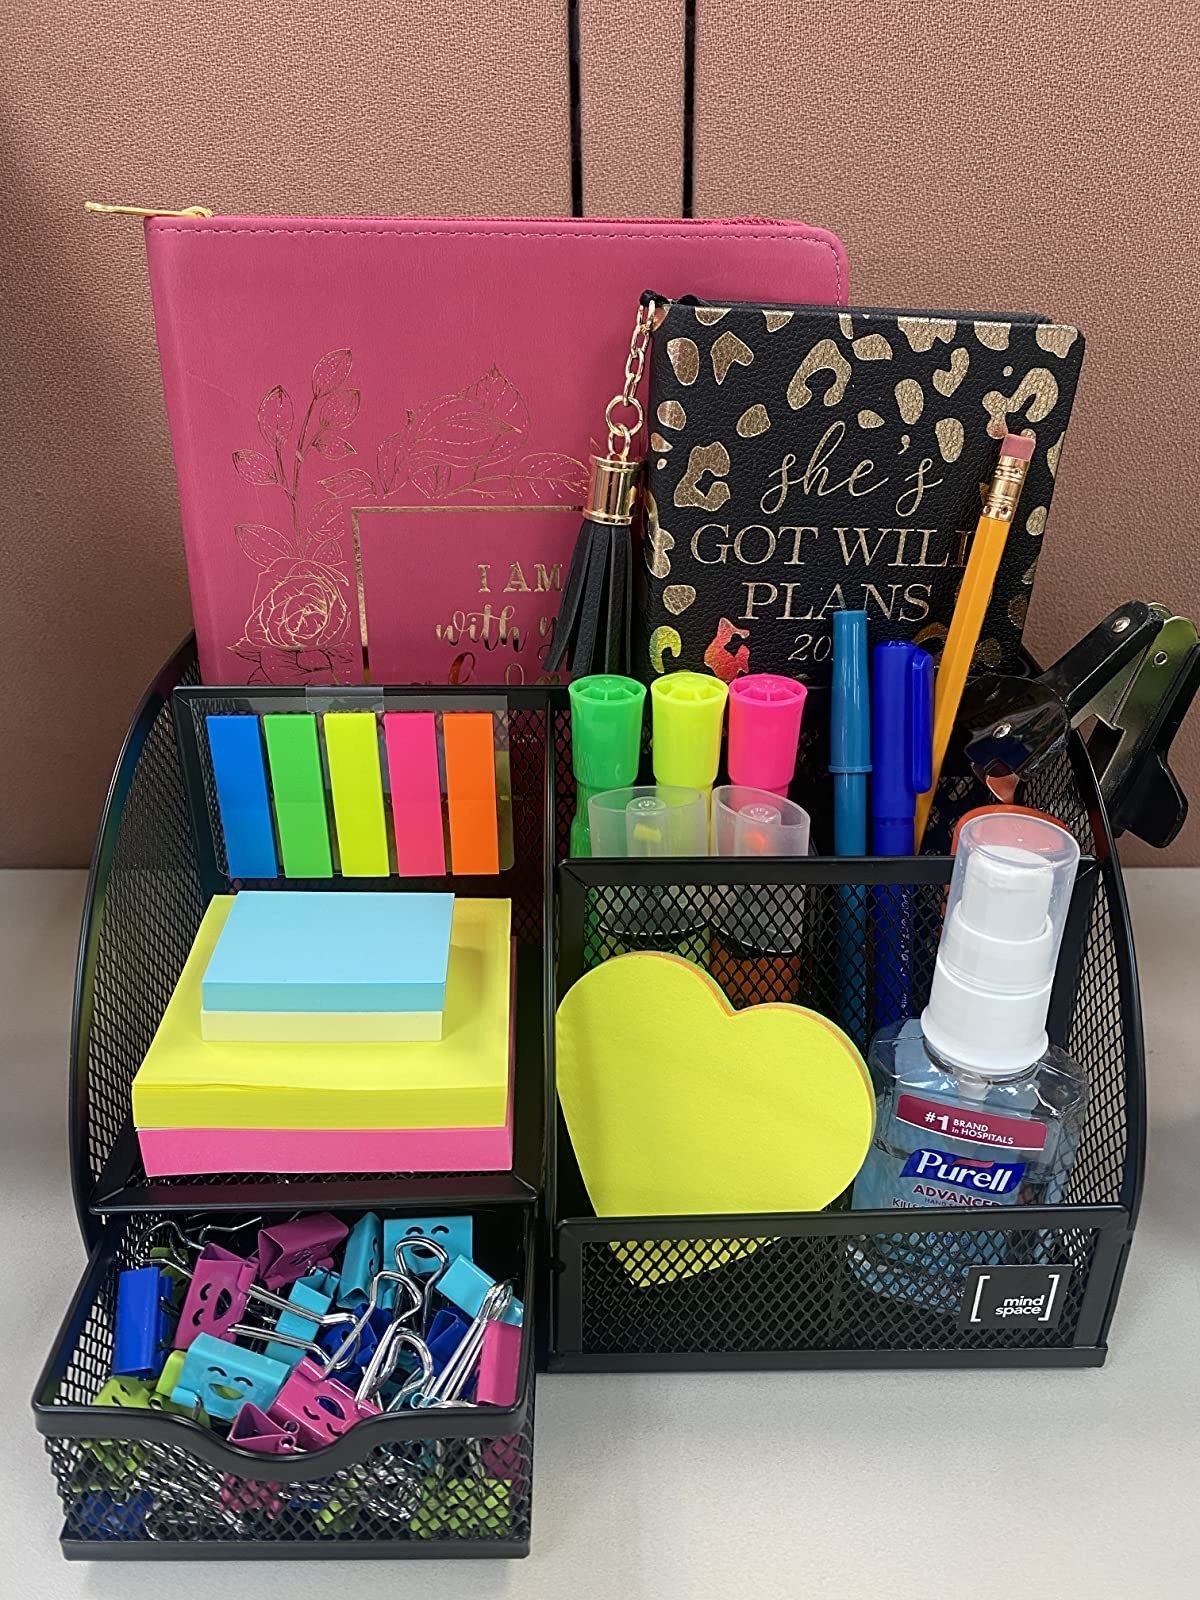 reviewer image of the mindspace desk organizer on a customer's desk